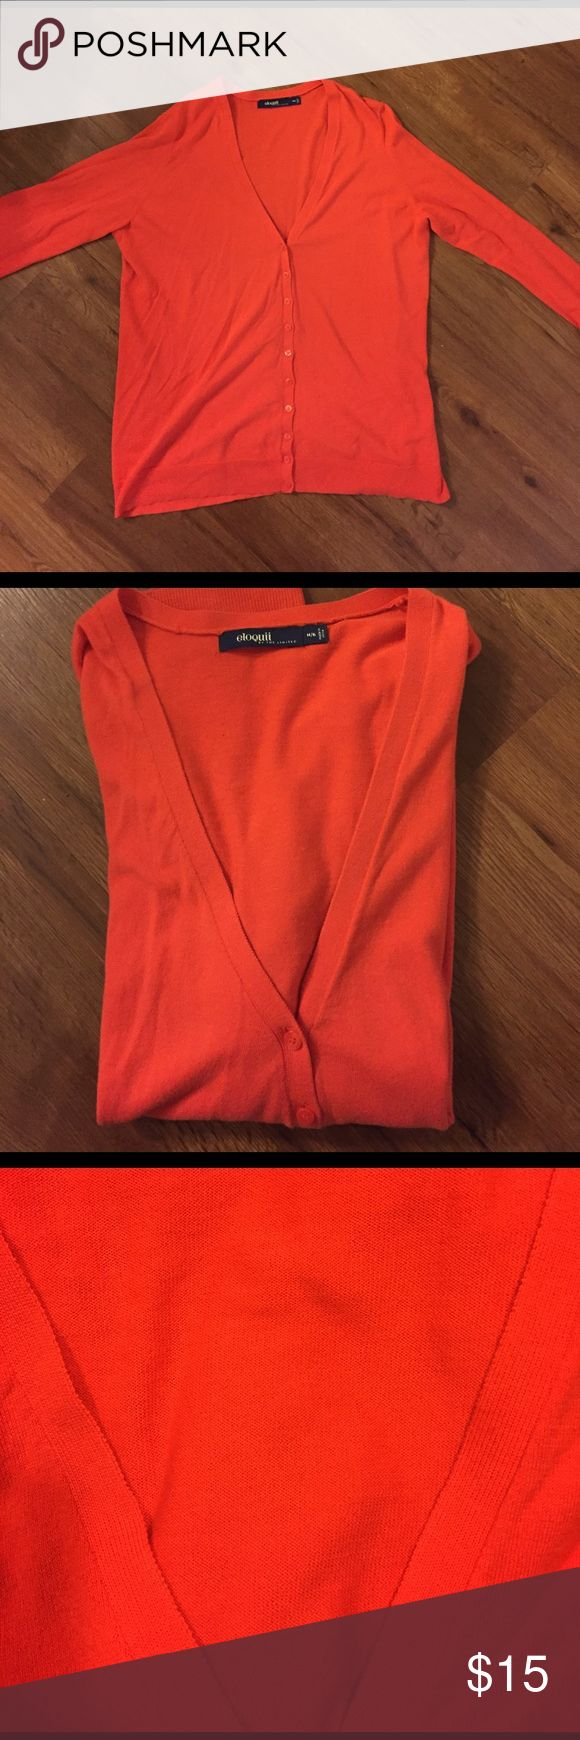 Eloquii red salmon cardigan long sleeves This red salmon long sleeved cardigan is in great condition. Perfect to throw on and hit the day! Please note size is 16/18. Willing to bundle with other colors I have listed. Eloquii Sweaters Cardigans